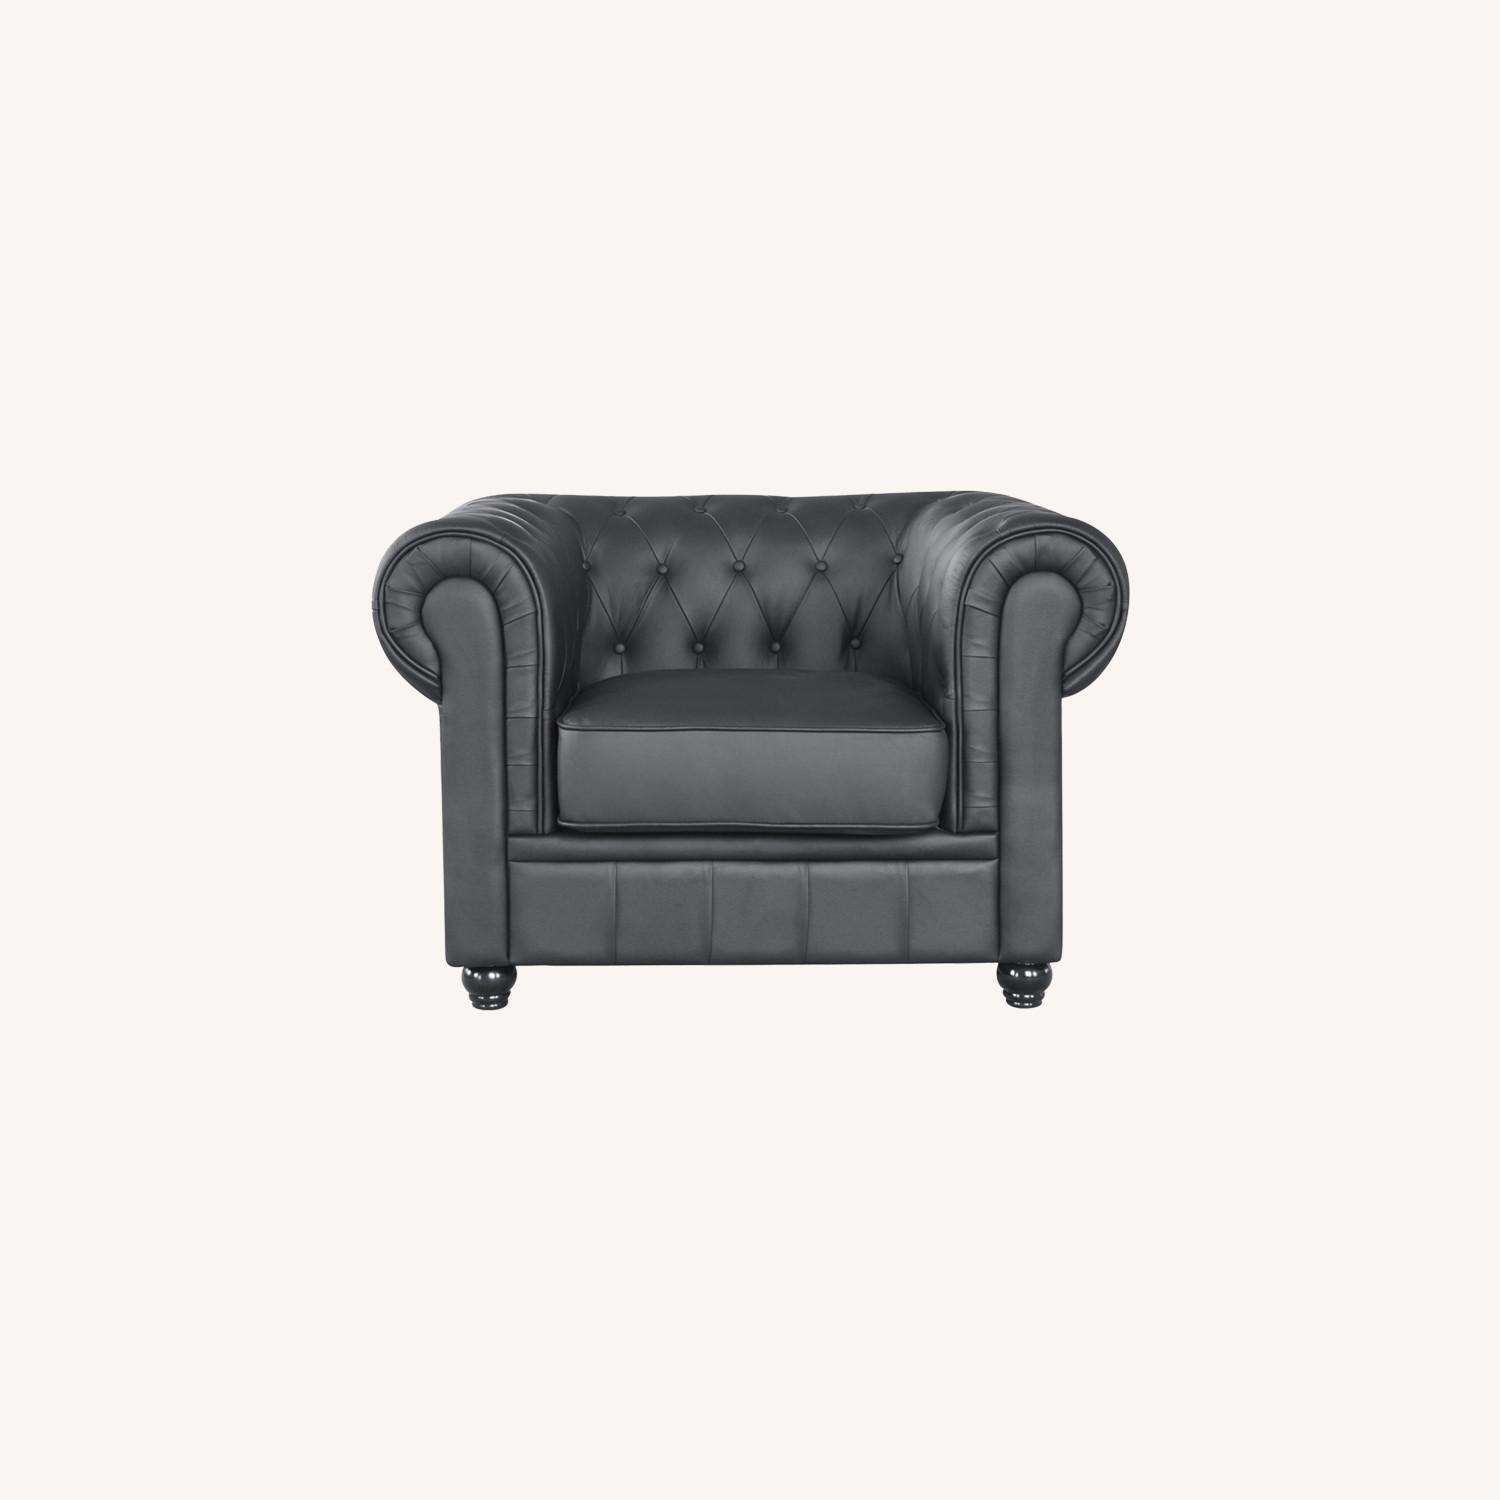 Modern Chair In Soft Black Leatherette - image-7